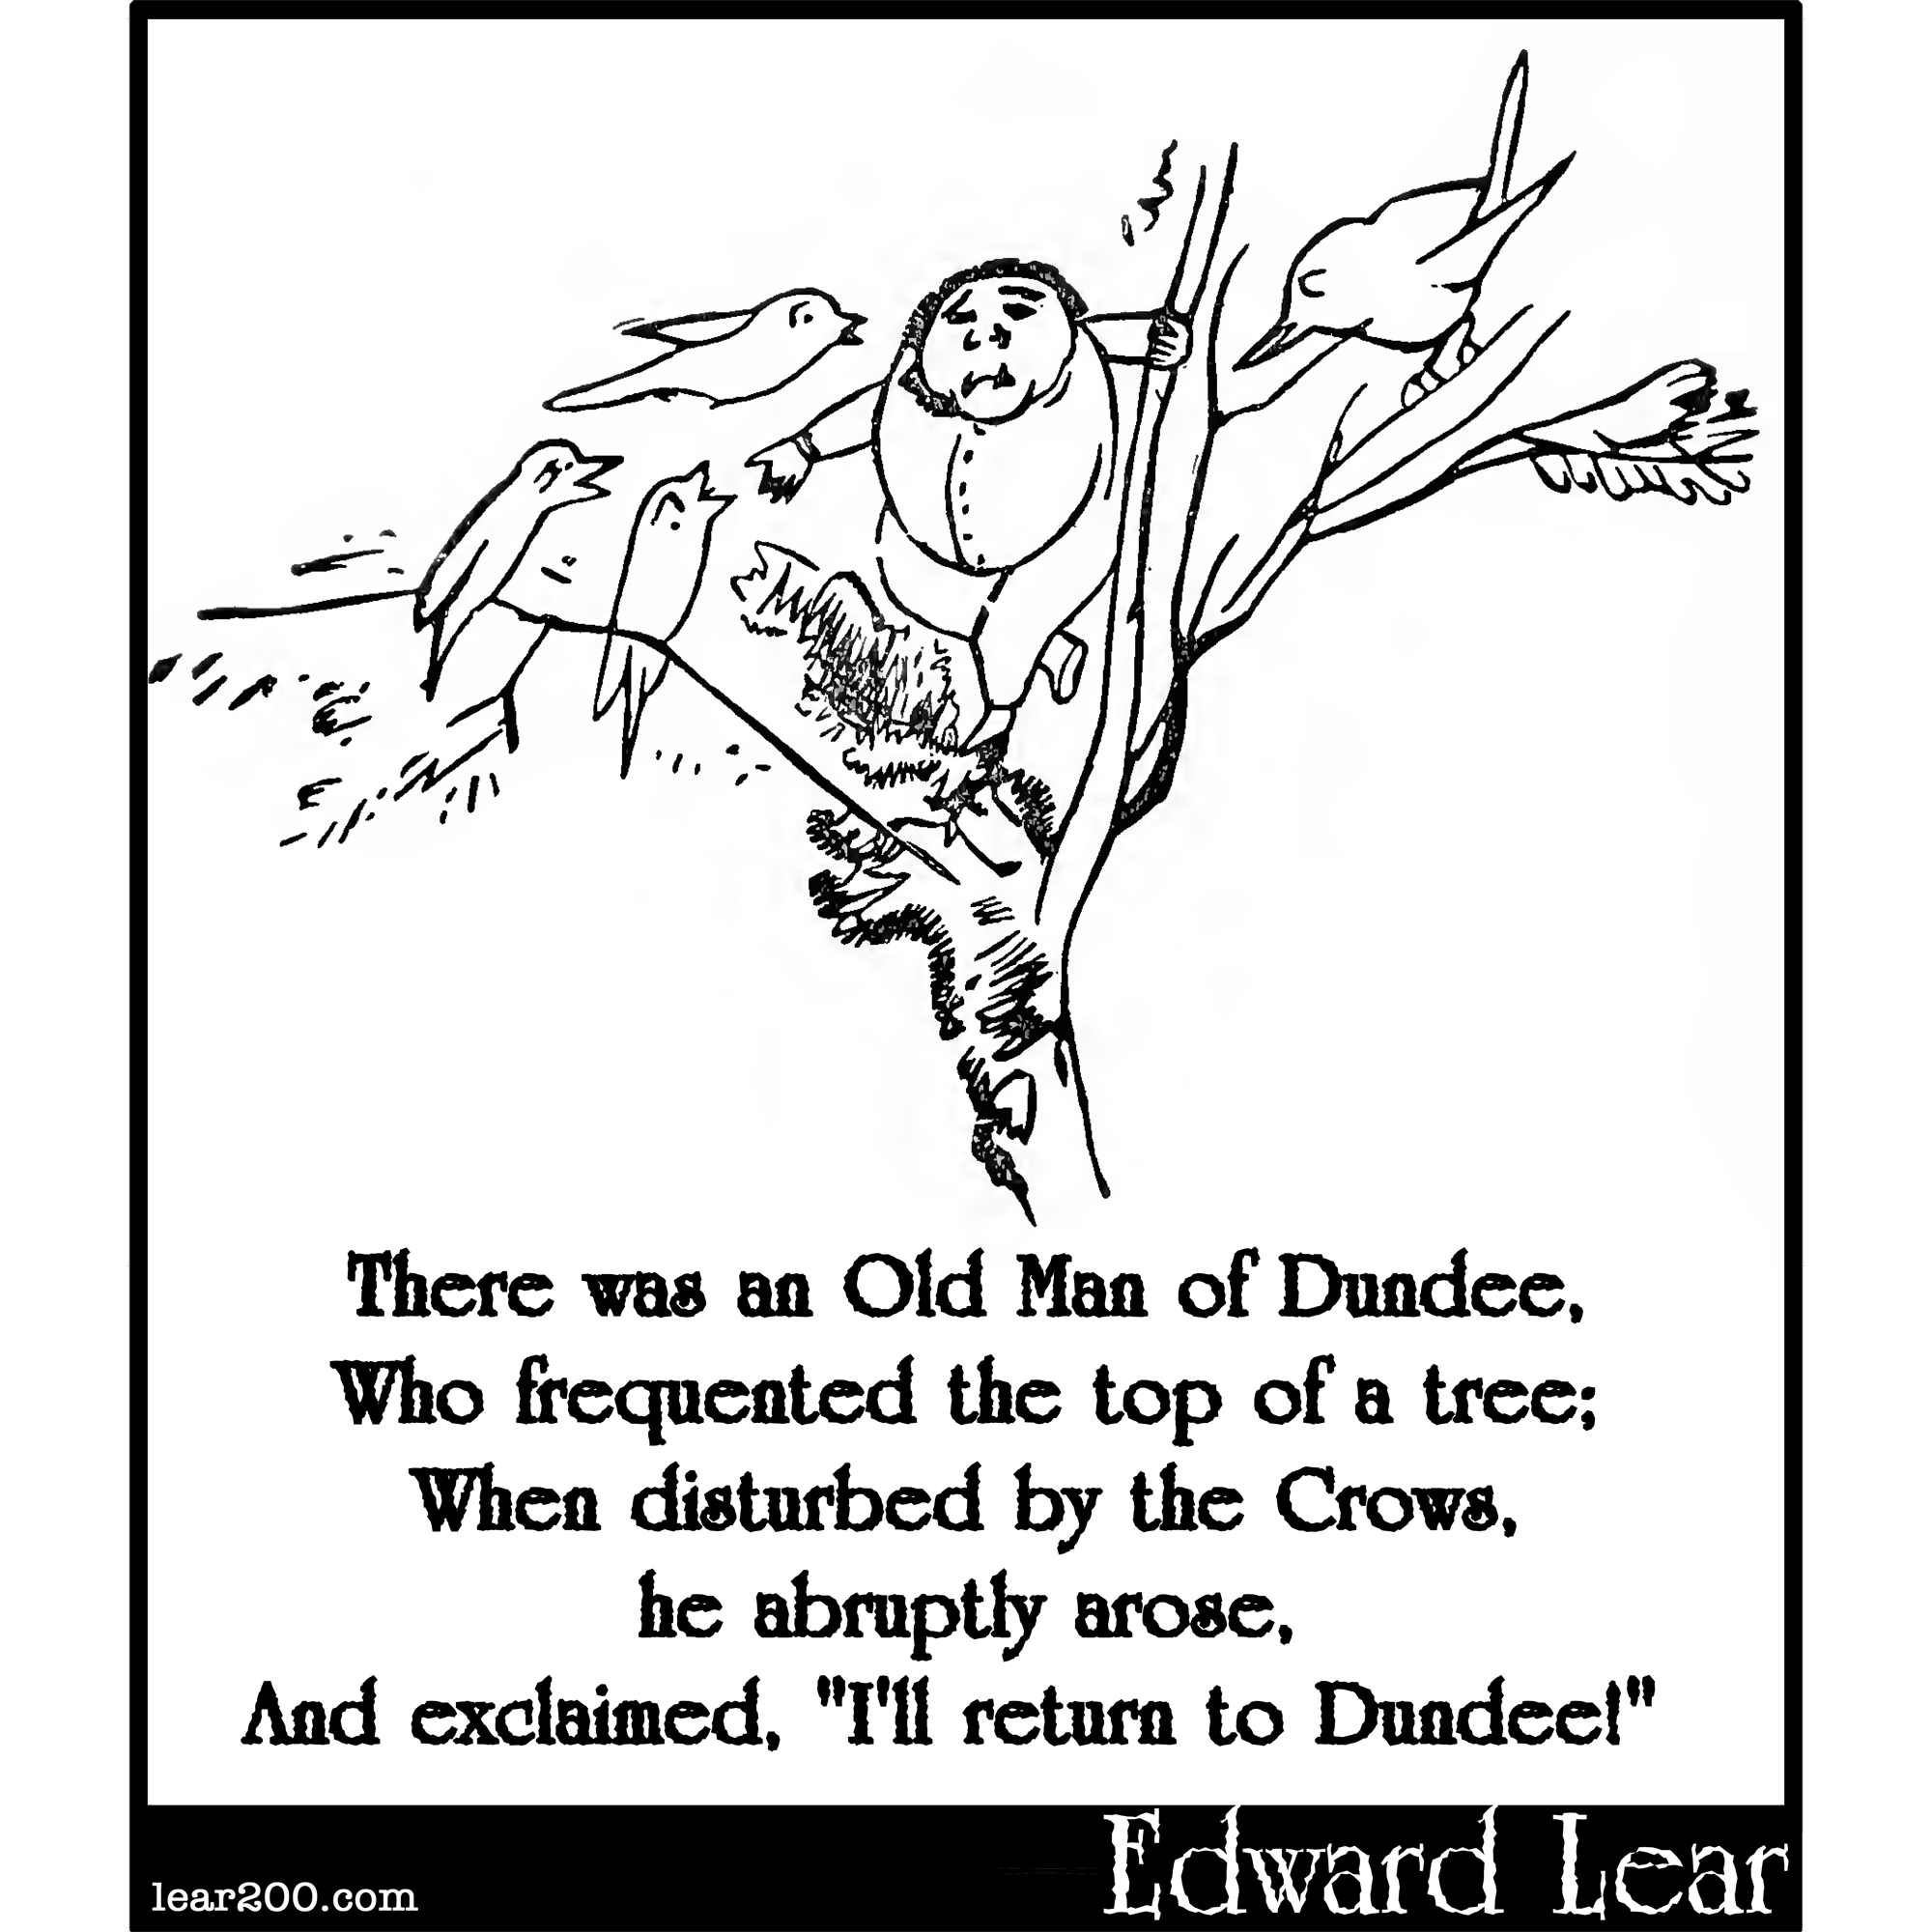 There was an Old Man of Dundee